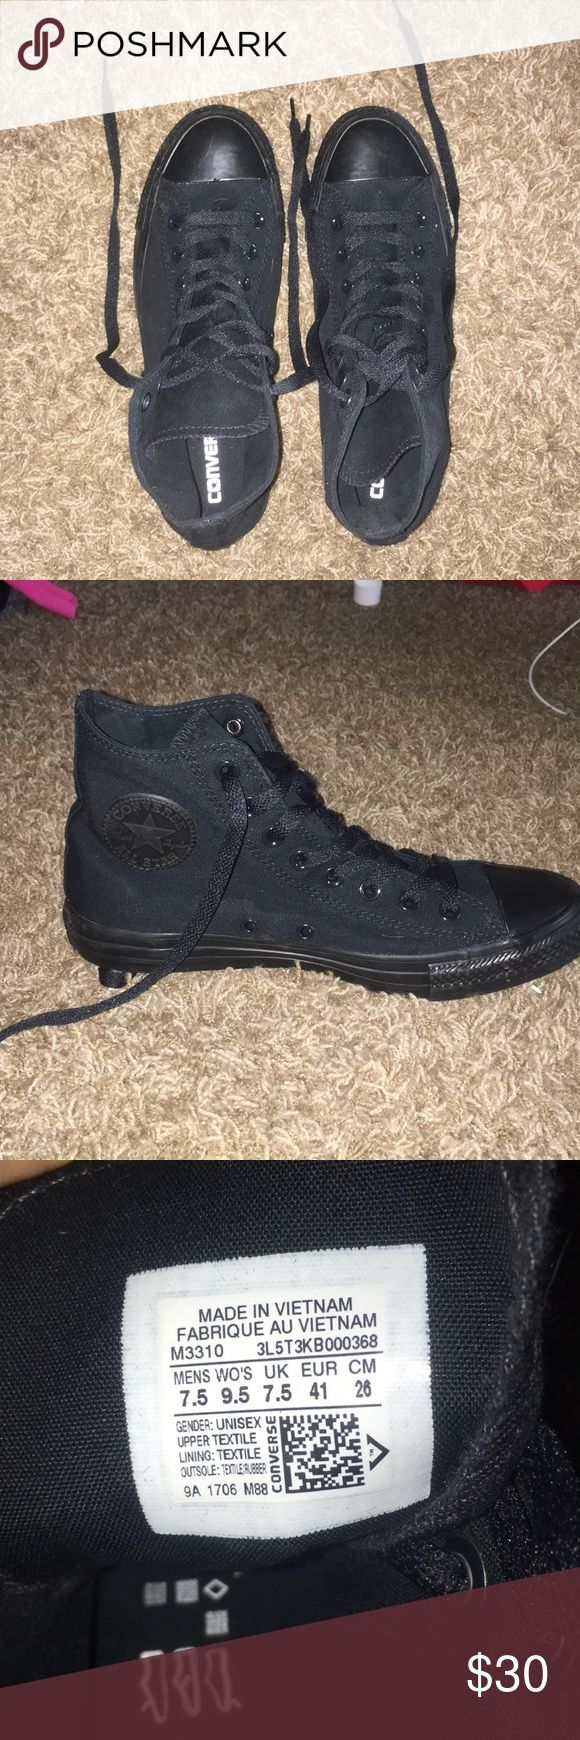 NEW all black high-top Converse Brand new & in flawless condition, never been worn! ✨ Converse Shoes